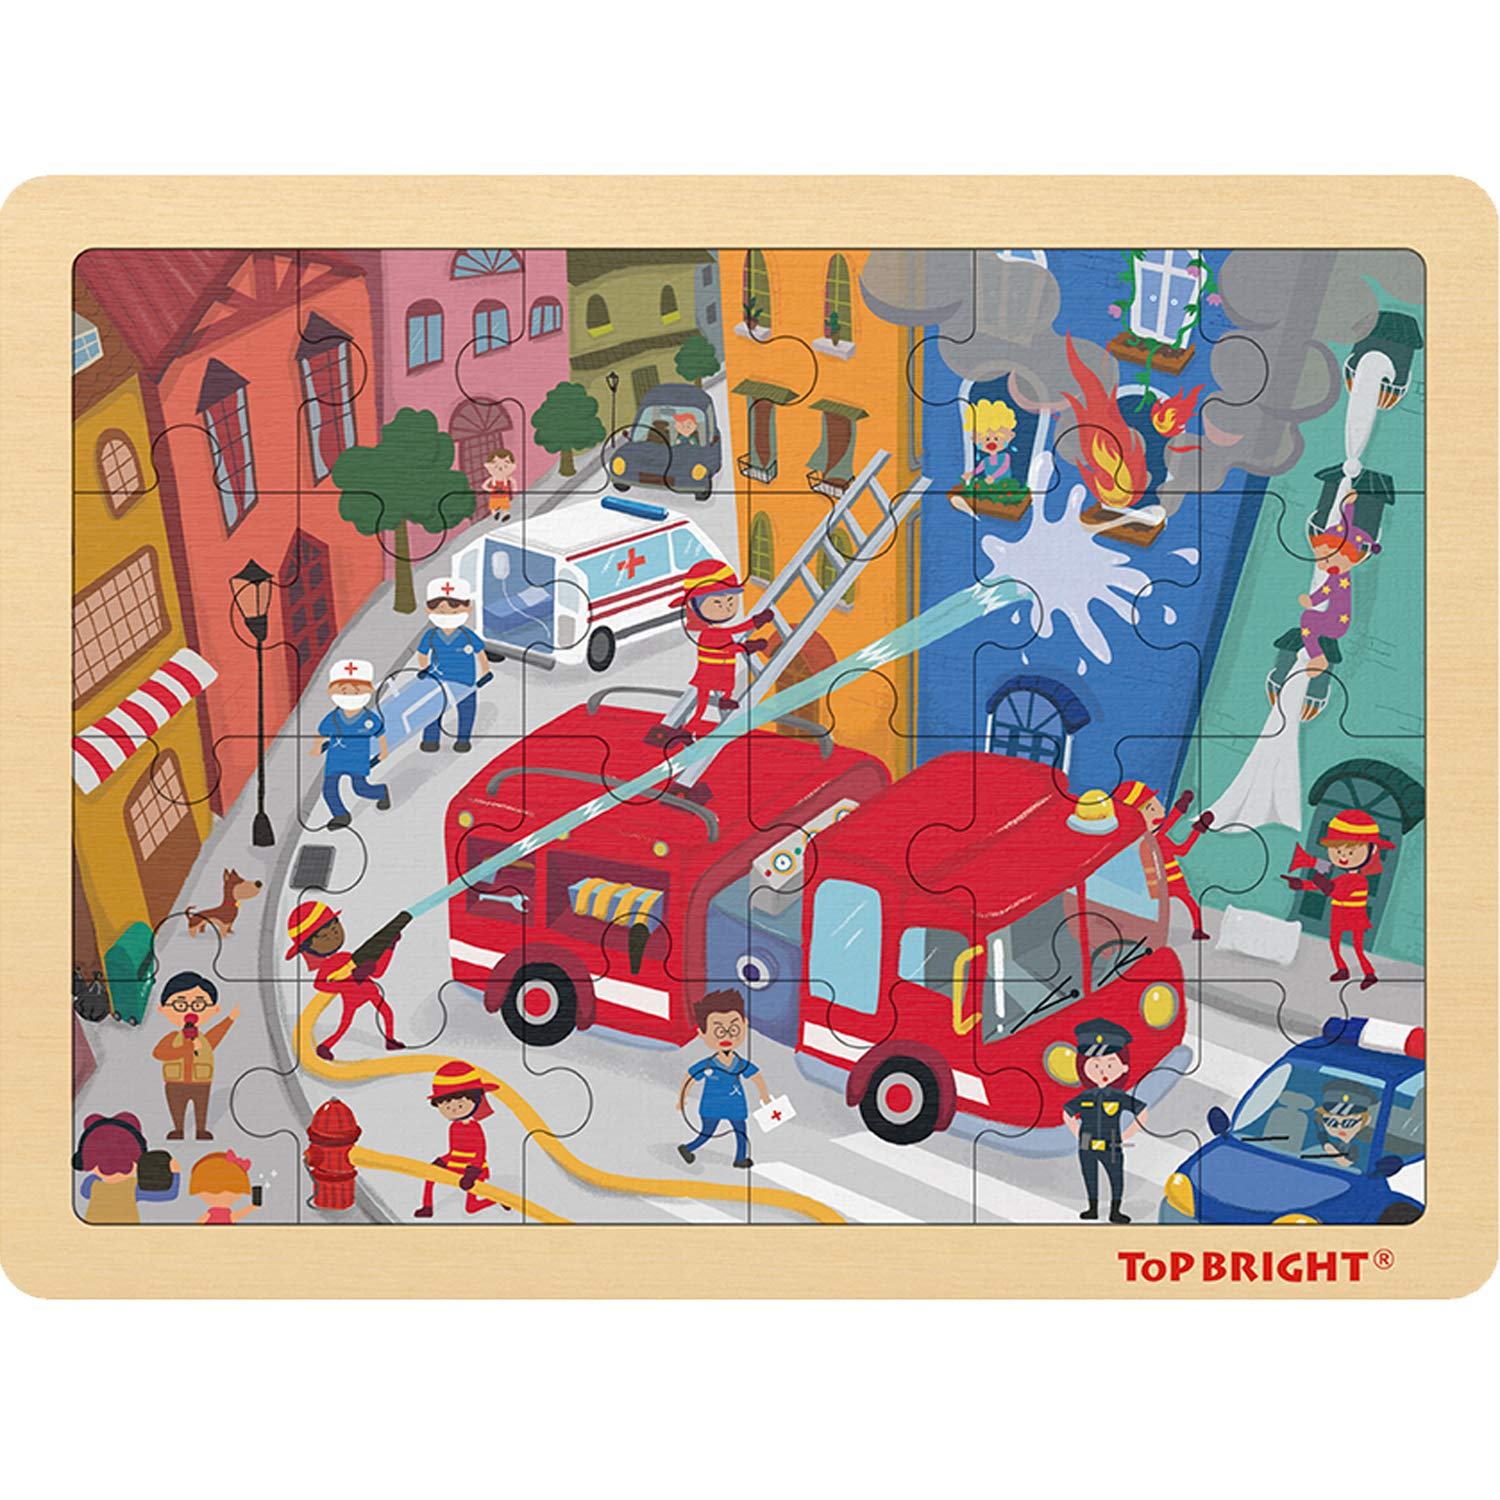 TOP Bright 24 Piece Puzzles for Kids Ages 3-5 - Fire Rescue Wooden Jigsaw Puzzle with Storage Tray